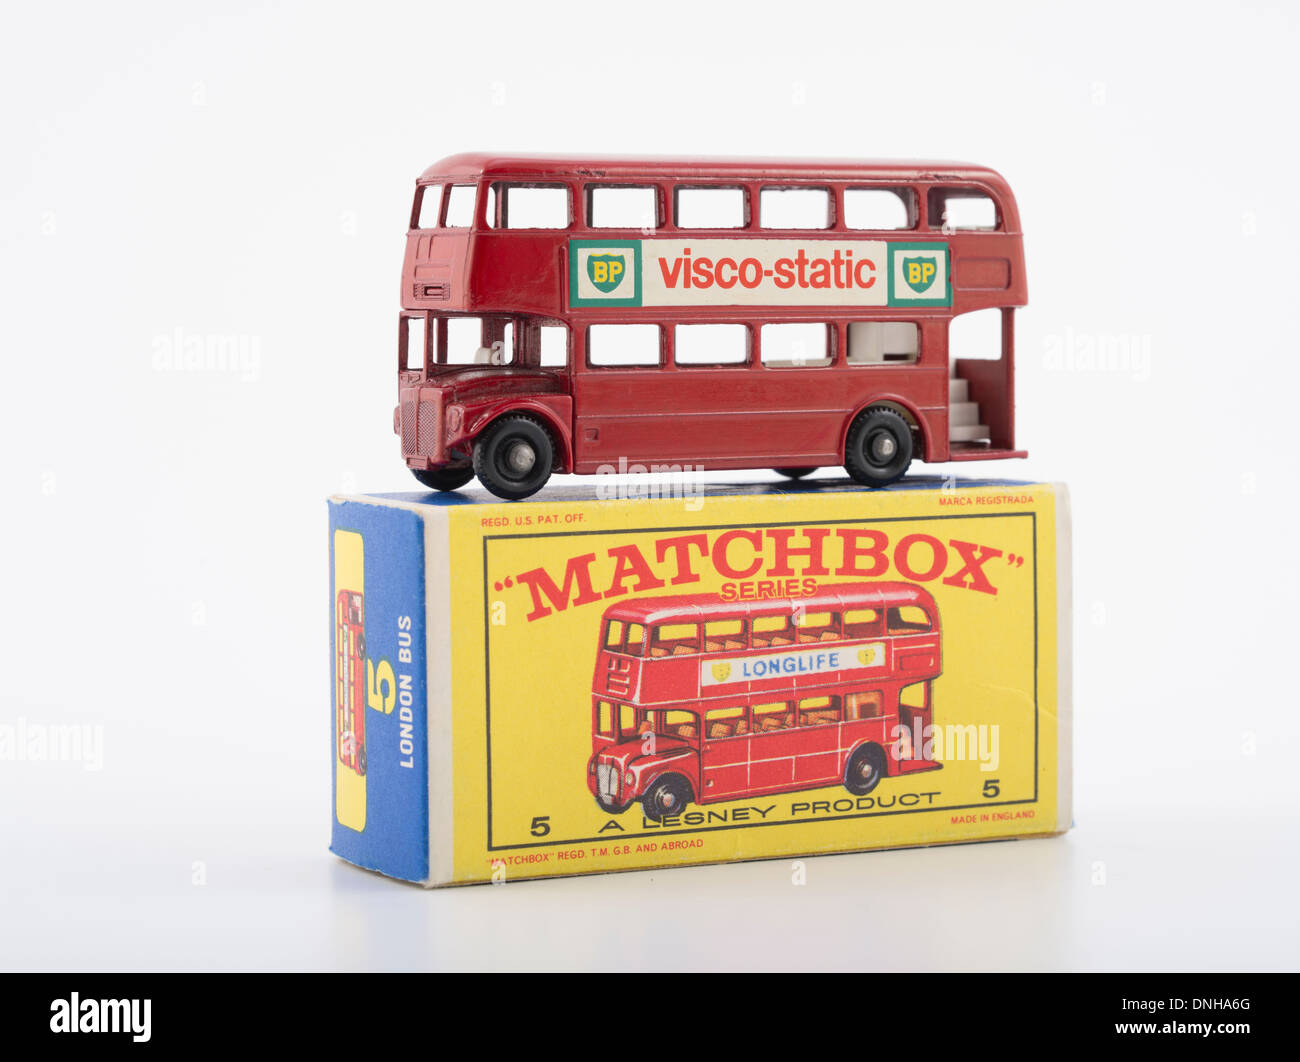 Matchbox Die-cast Toy Cars - #5 Routemaster Red Double Decker Bus Produced by Lesney Products United Kingdom from 1953 onwards. - Stock Image